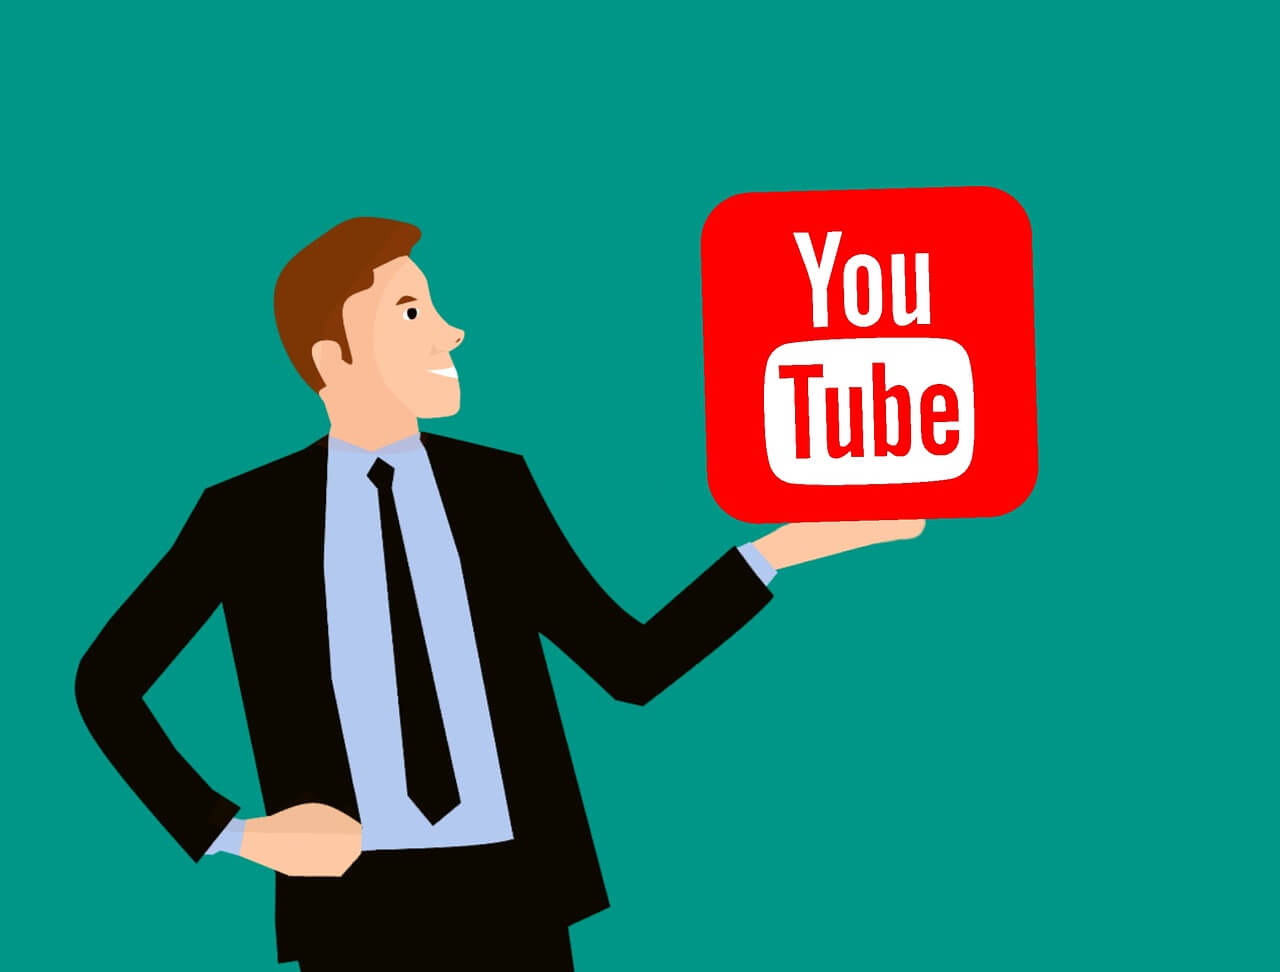 youtube, youtuber, channel